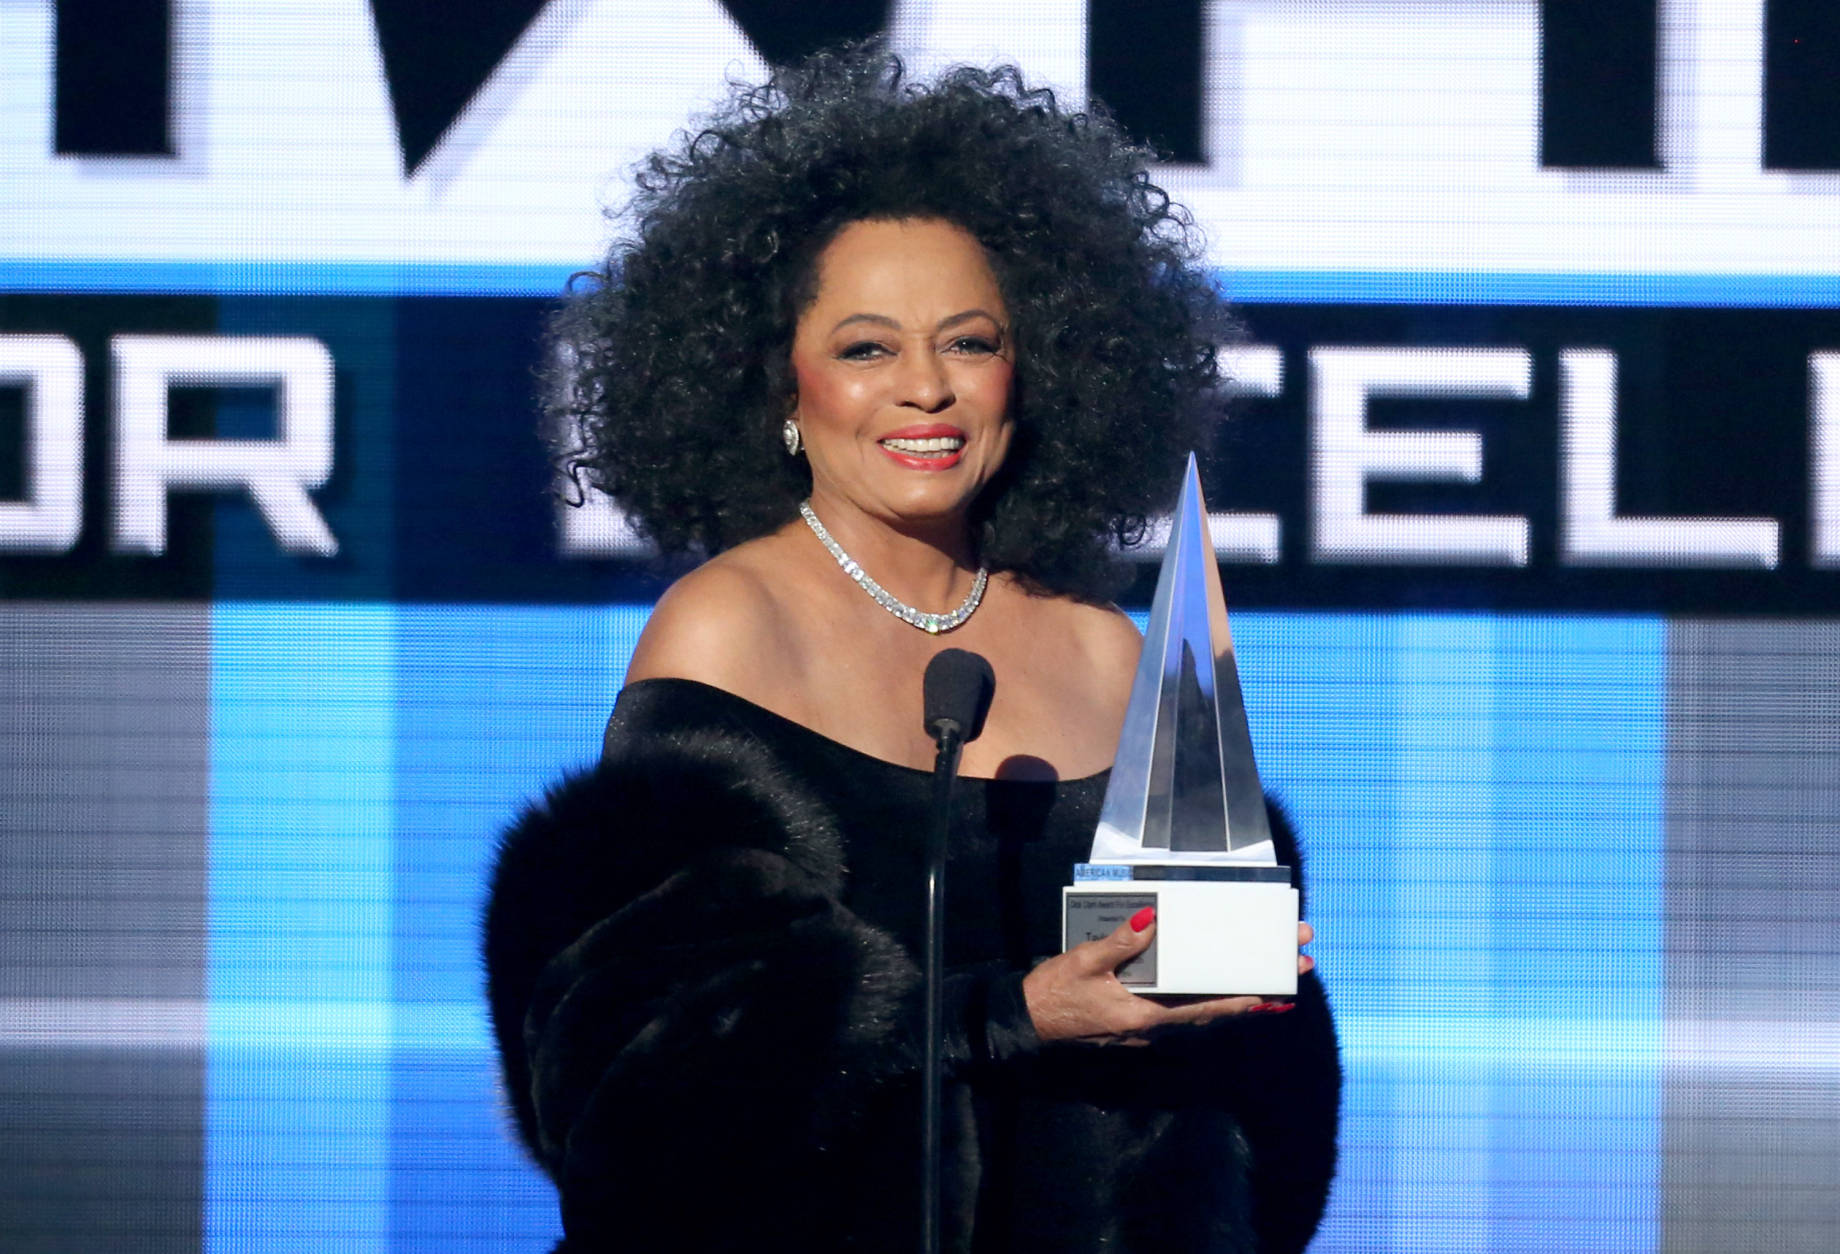 Diana Ross presents the Dick Clark award for excellence at the 42nd annual American Music Awards at Nokia Theatre L.A. Live on Sunday, Nov. 23, 2014, in Los Angeles. (Photo by Matt Sayles/Invision/AP)